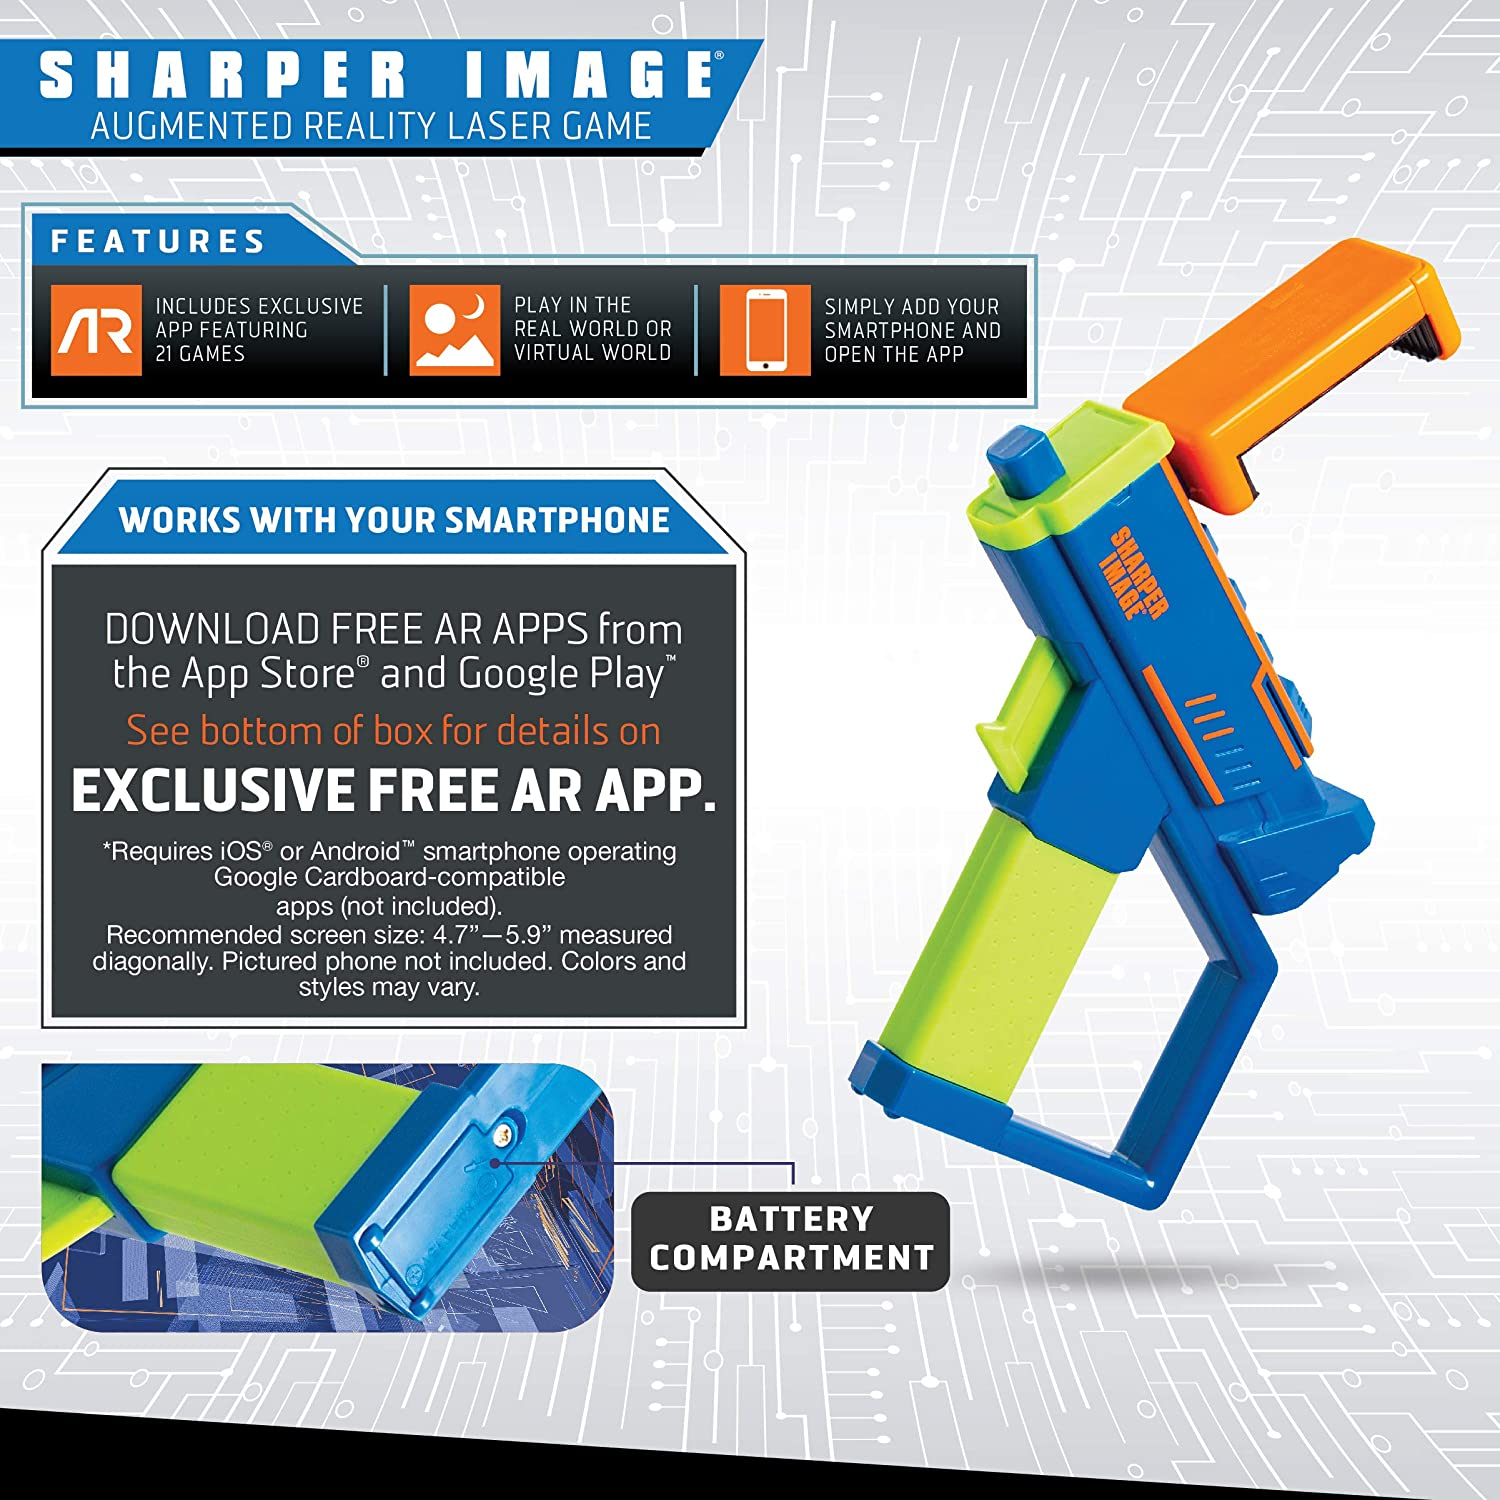 Sharper Image Augmented Virtual Reality Toy Blaster, Complete Video Gaming  System, Connects to Smartphone via Bluetooth, Use with Free AR App, Games